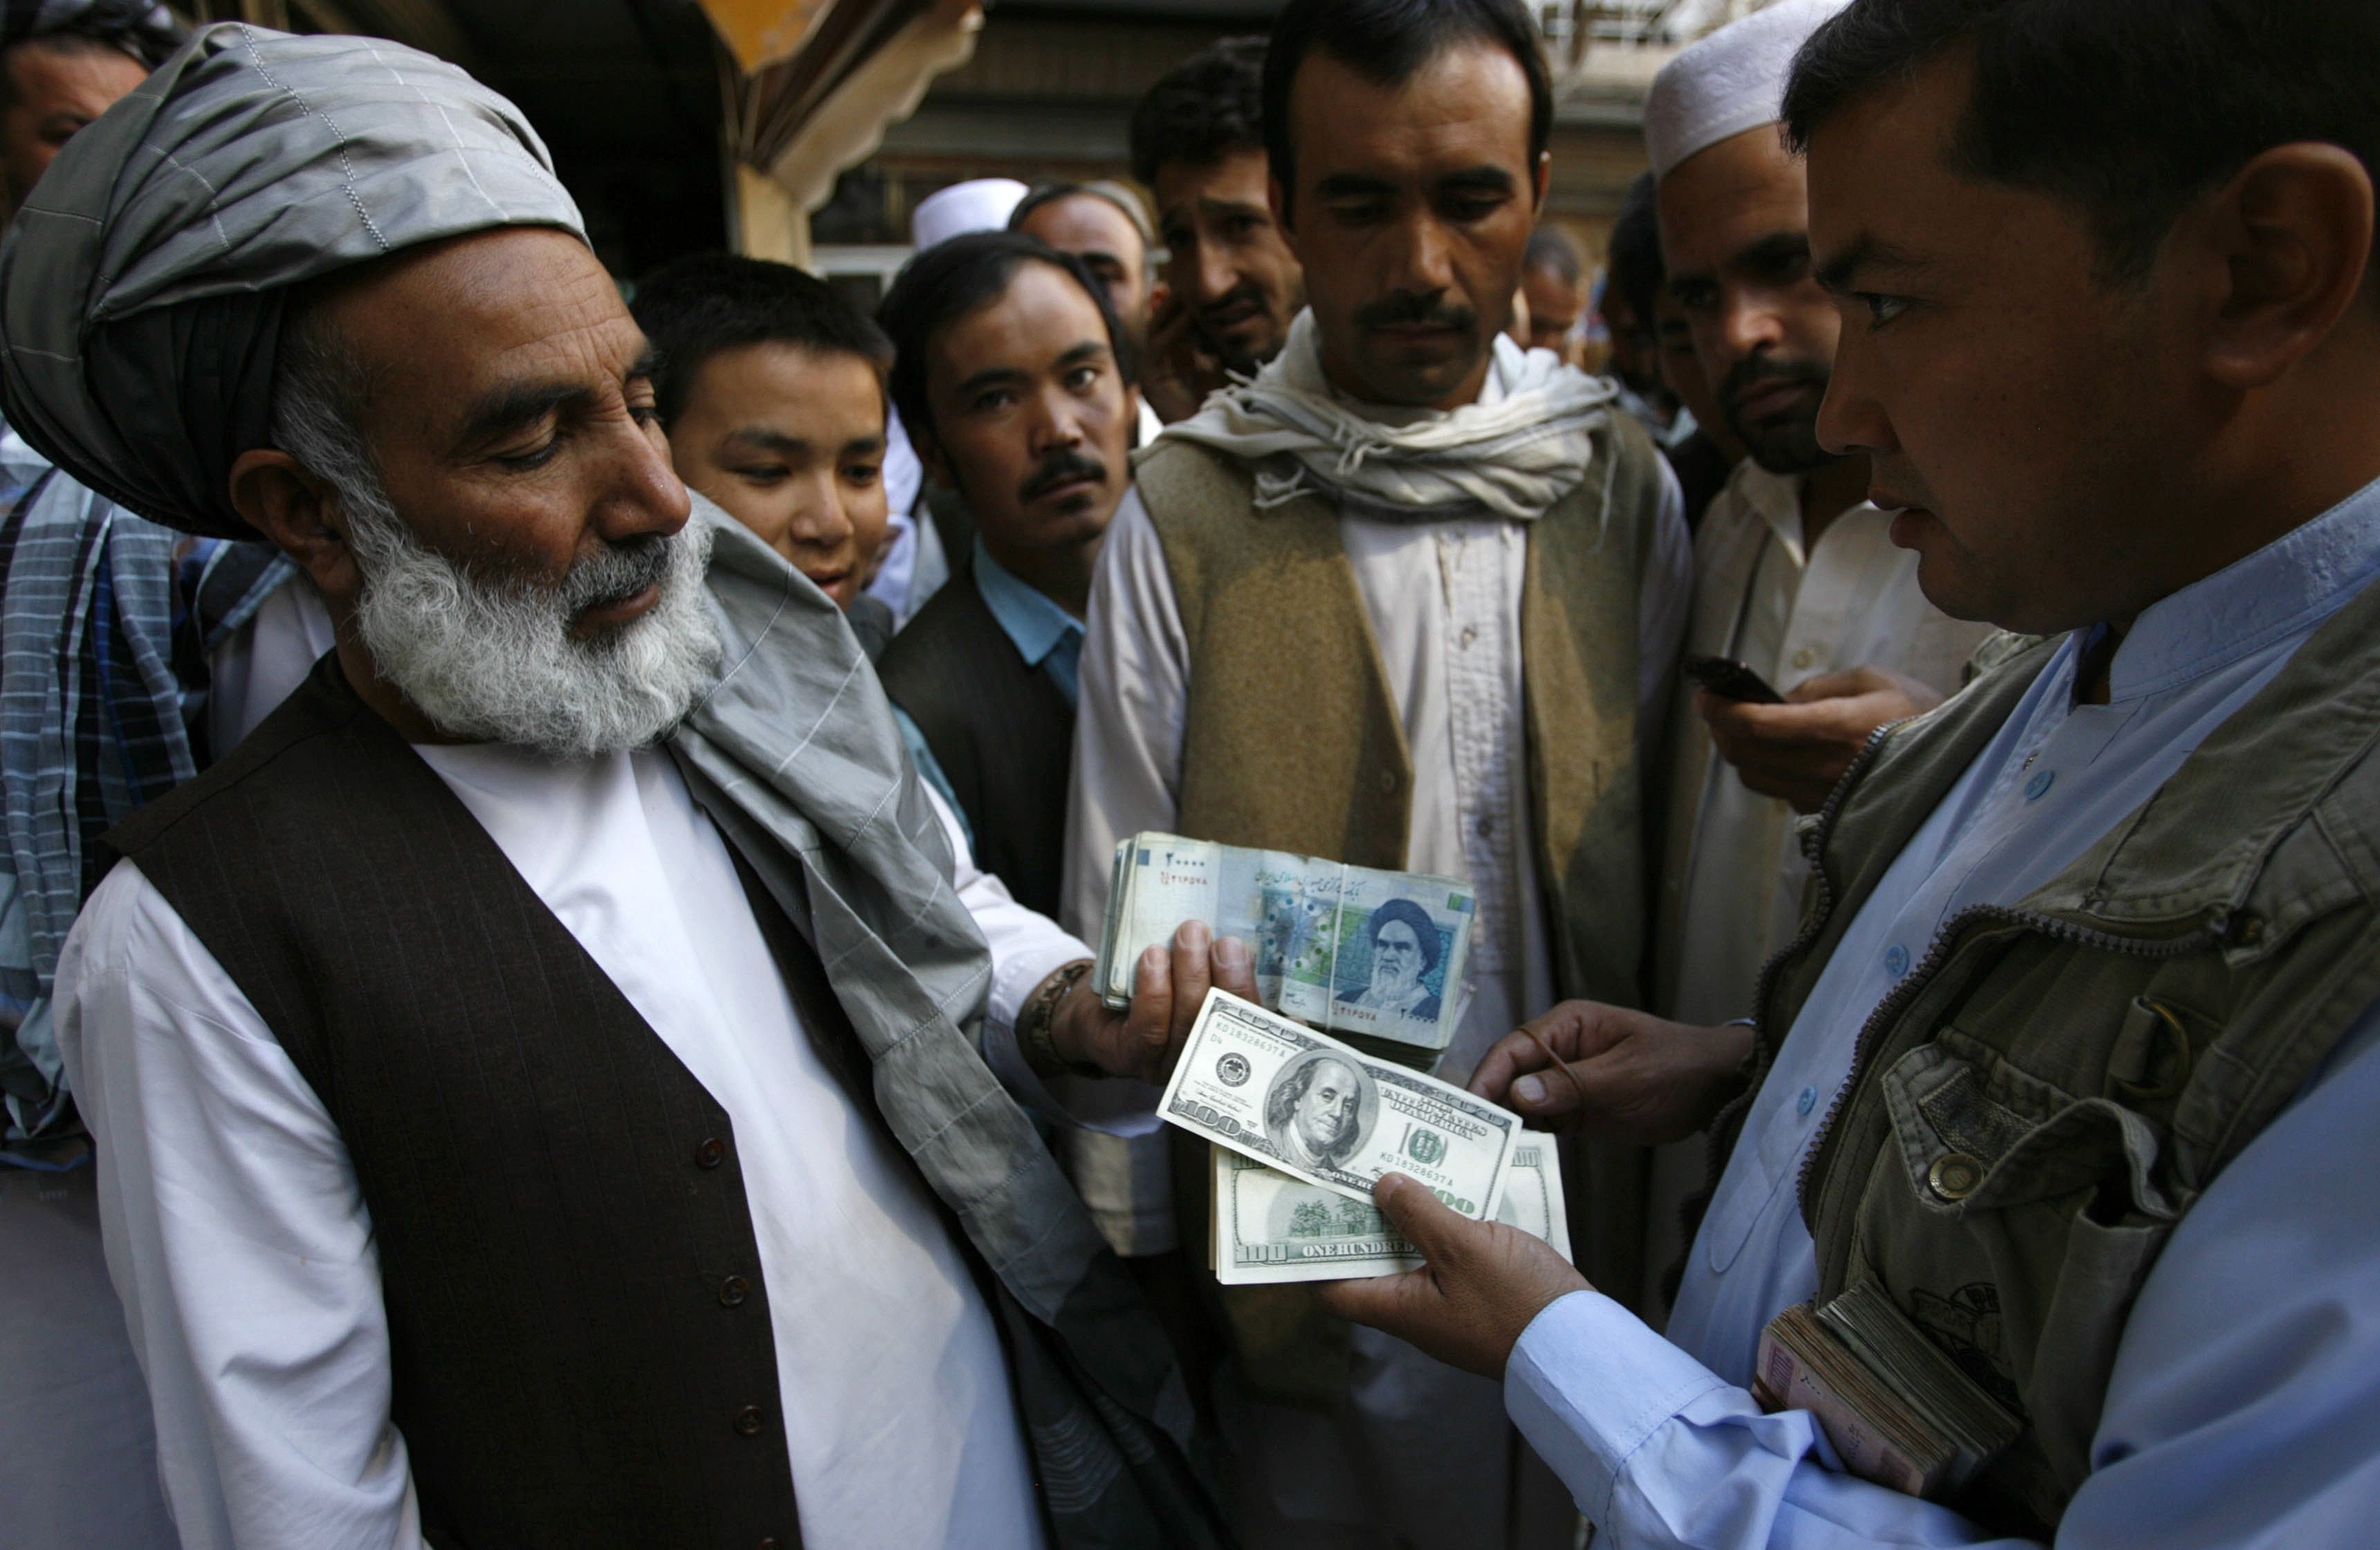 2012-10-04T120000Z_669106588_GM1E8A41LG901_RTRMADP_3_IRAN-CURRENCY-AFGHANISTAN